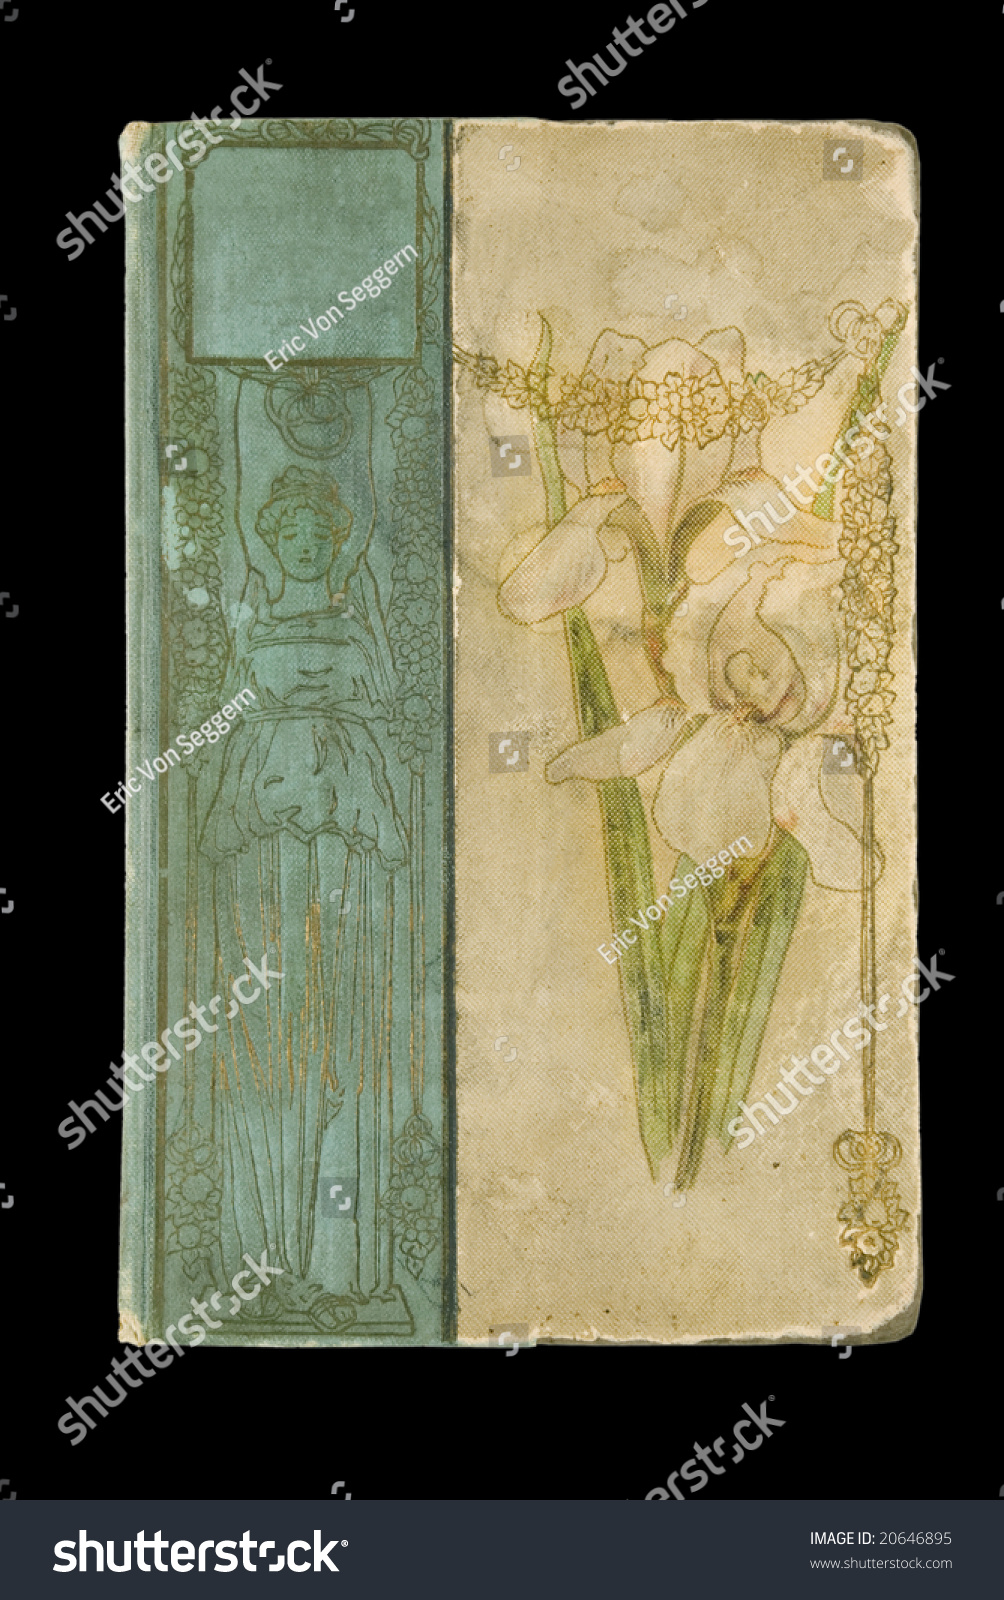 Book Cover Stock Art : Very old art nouveau book cover stock photo